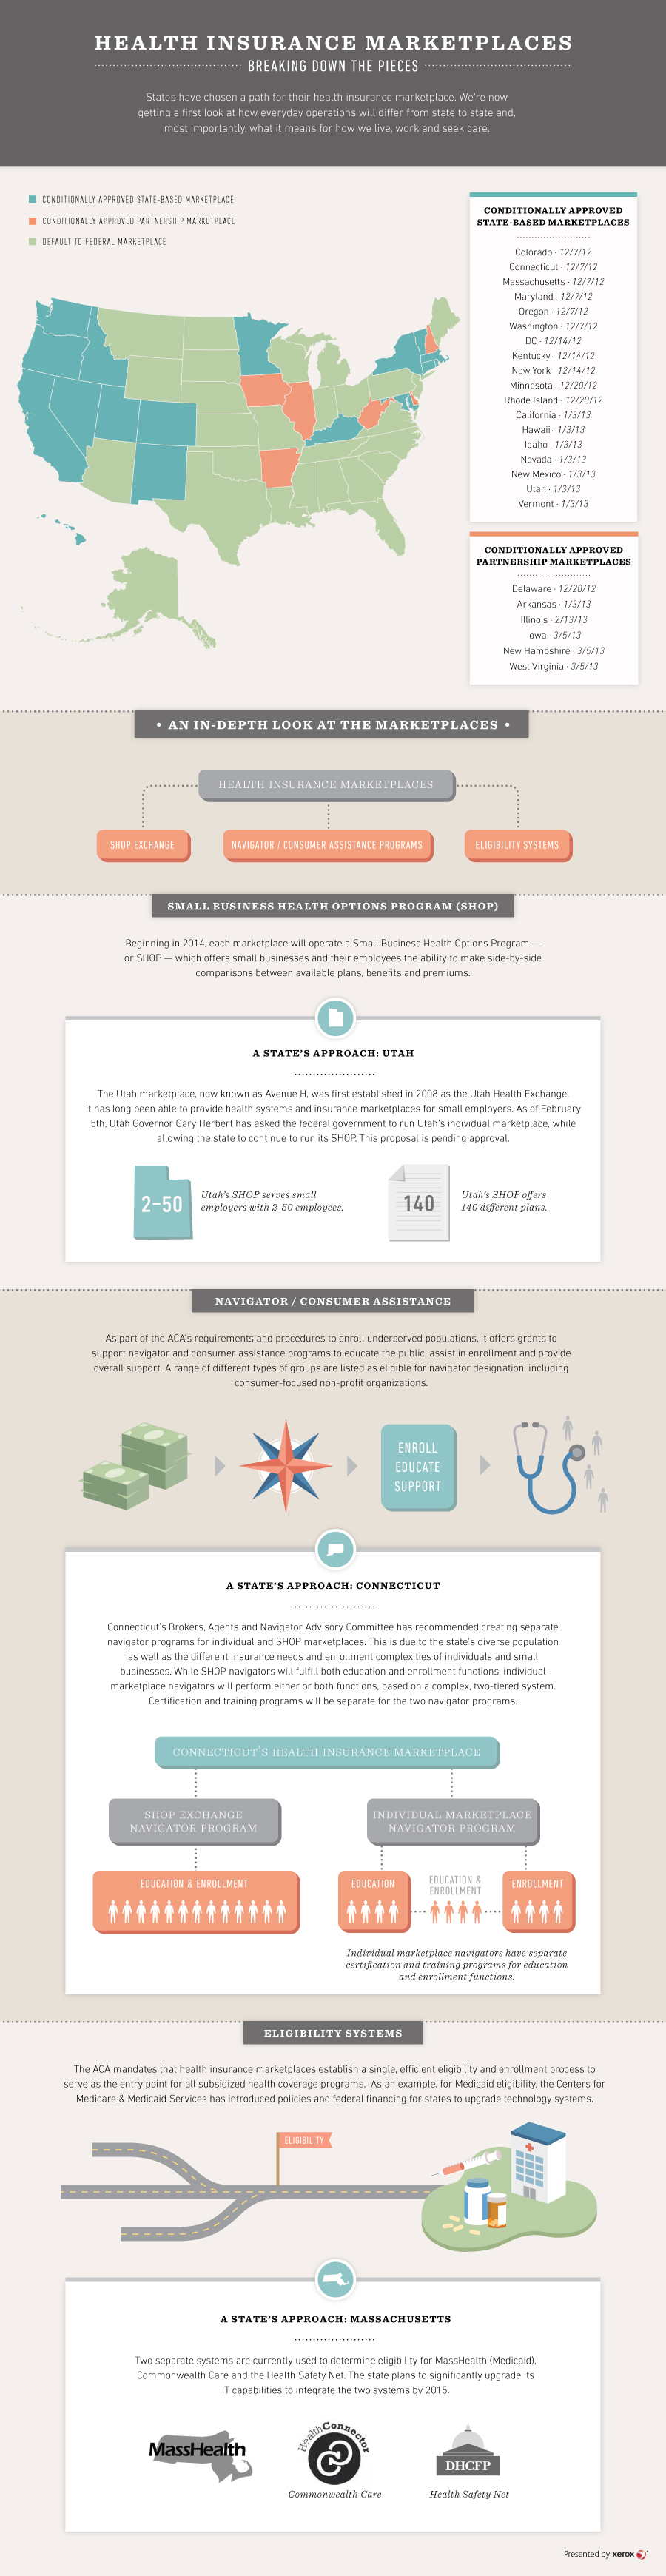 Sjr Infographic Healthbiz Decoded Health Insurance Marketplaces Marketplace Health Insurance Infographic Health Healthcare Infographics